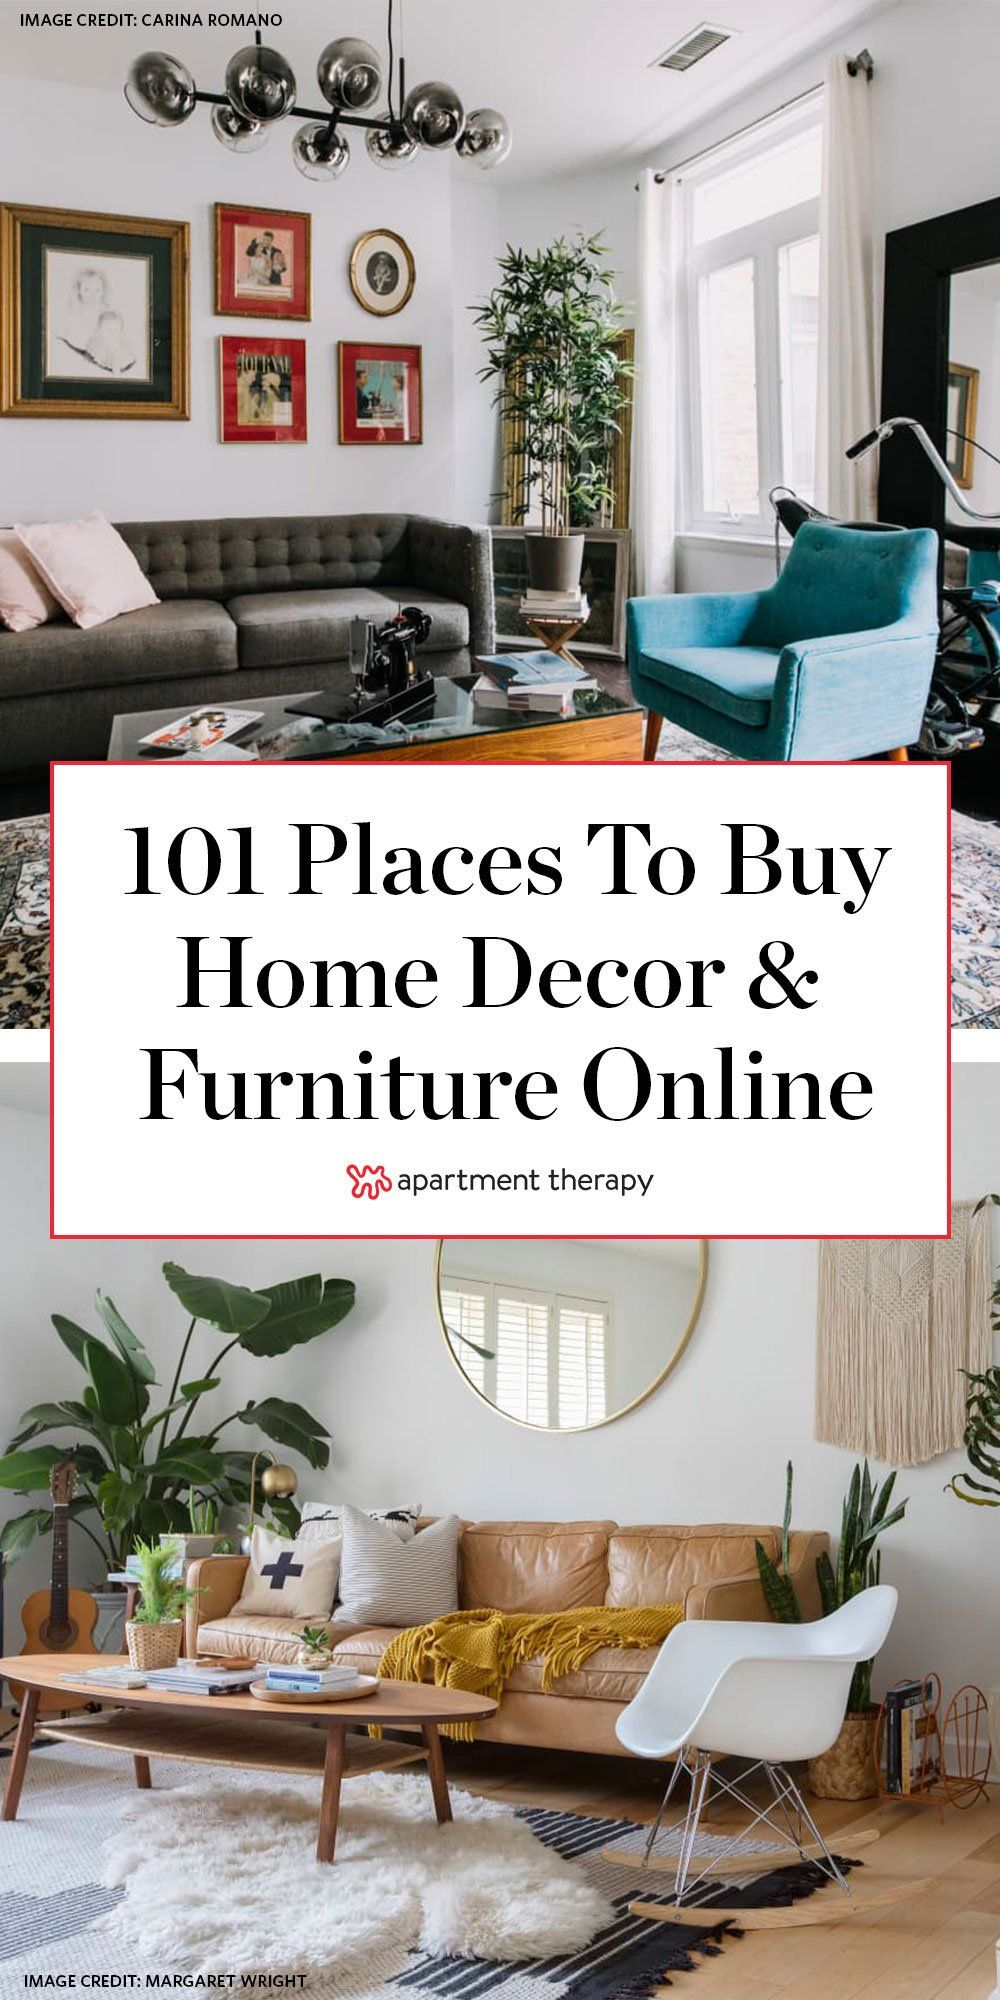 101 Places To Buy Furniture And Home Decor Home Decor Online Shopping Home Decor Online Cheap Home Decor Online